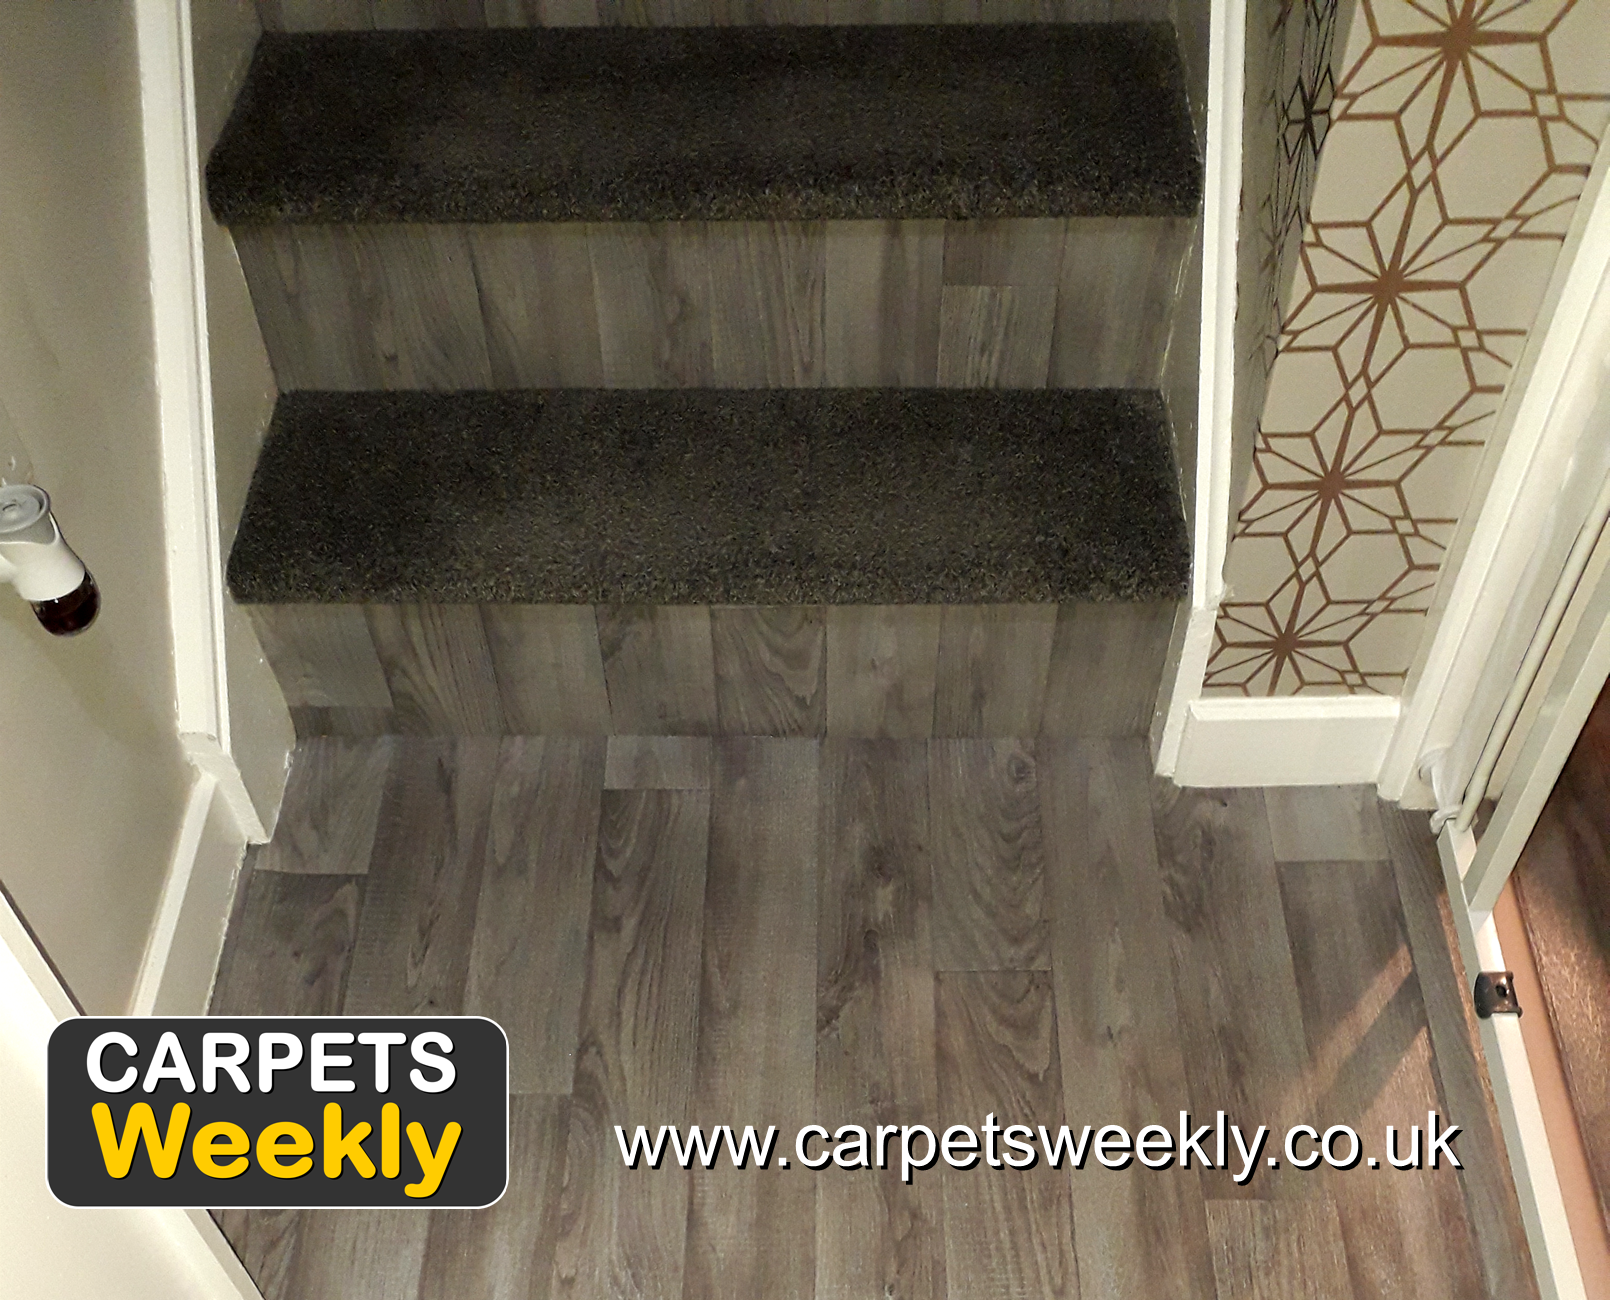 Dublin Heather Shadows and Sandiargo Vinyl Combi Stairs (a)from Carpets Weekly